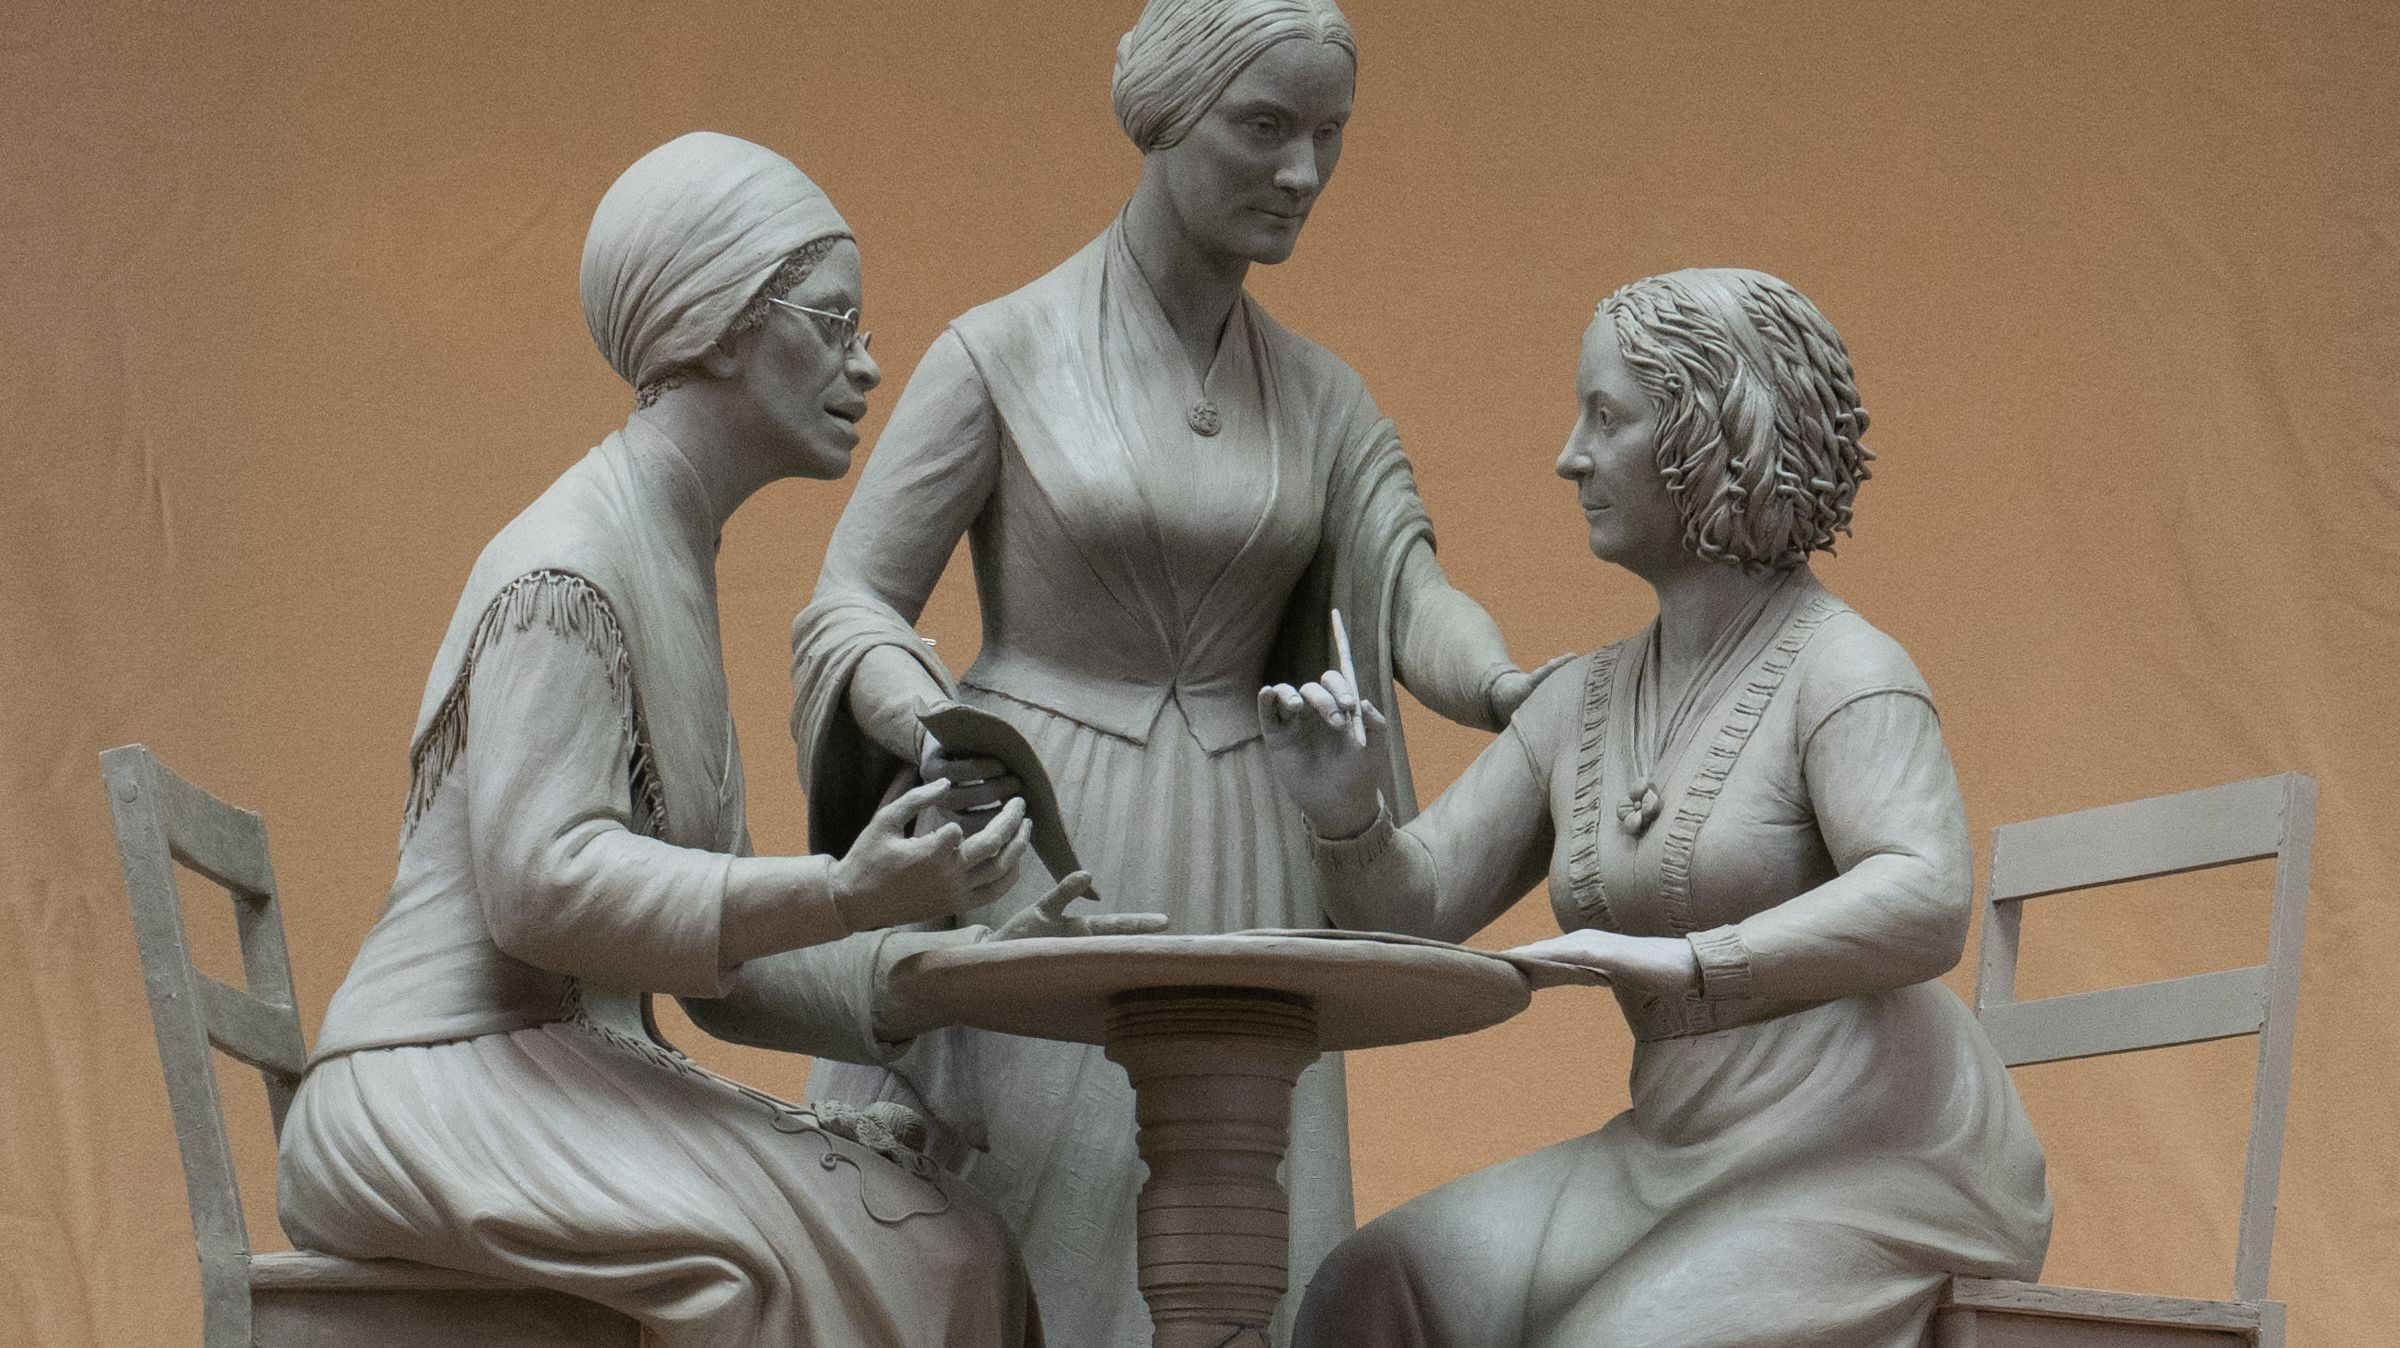 Female Suffragettes Memorial Will Mark Central Park's First Statues of Women In History